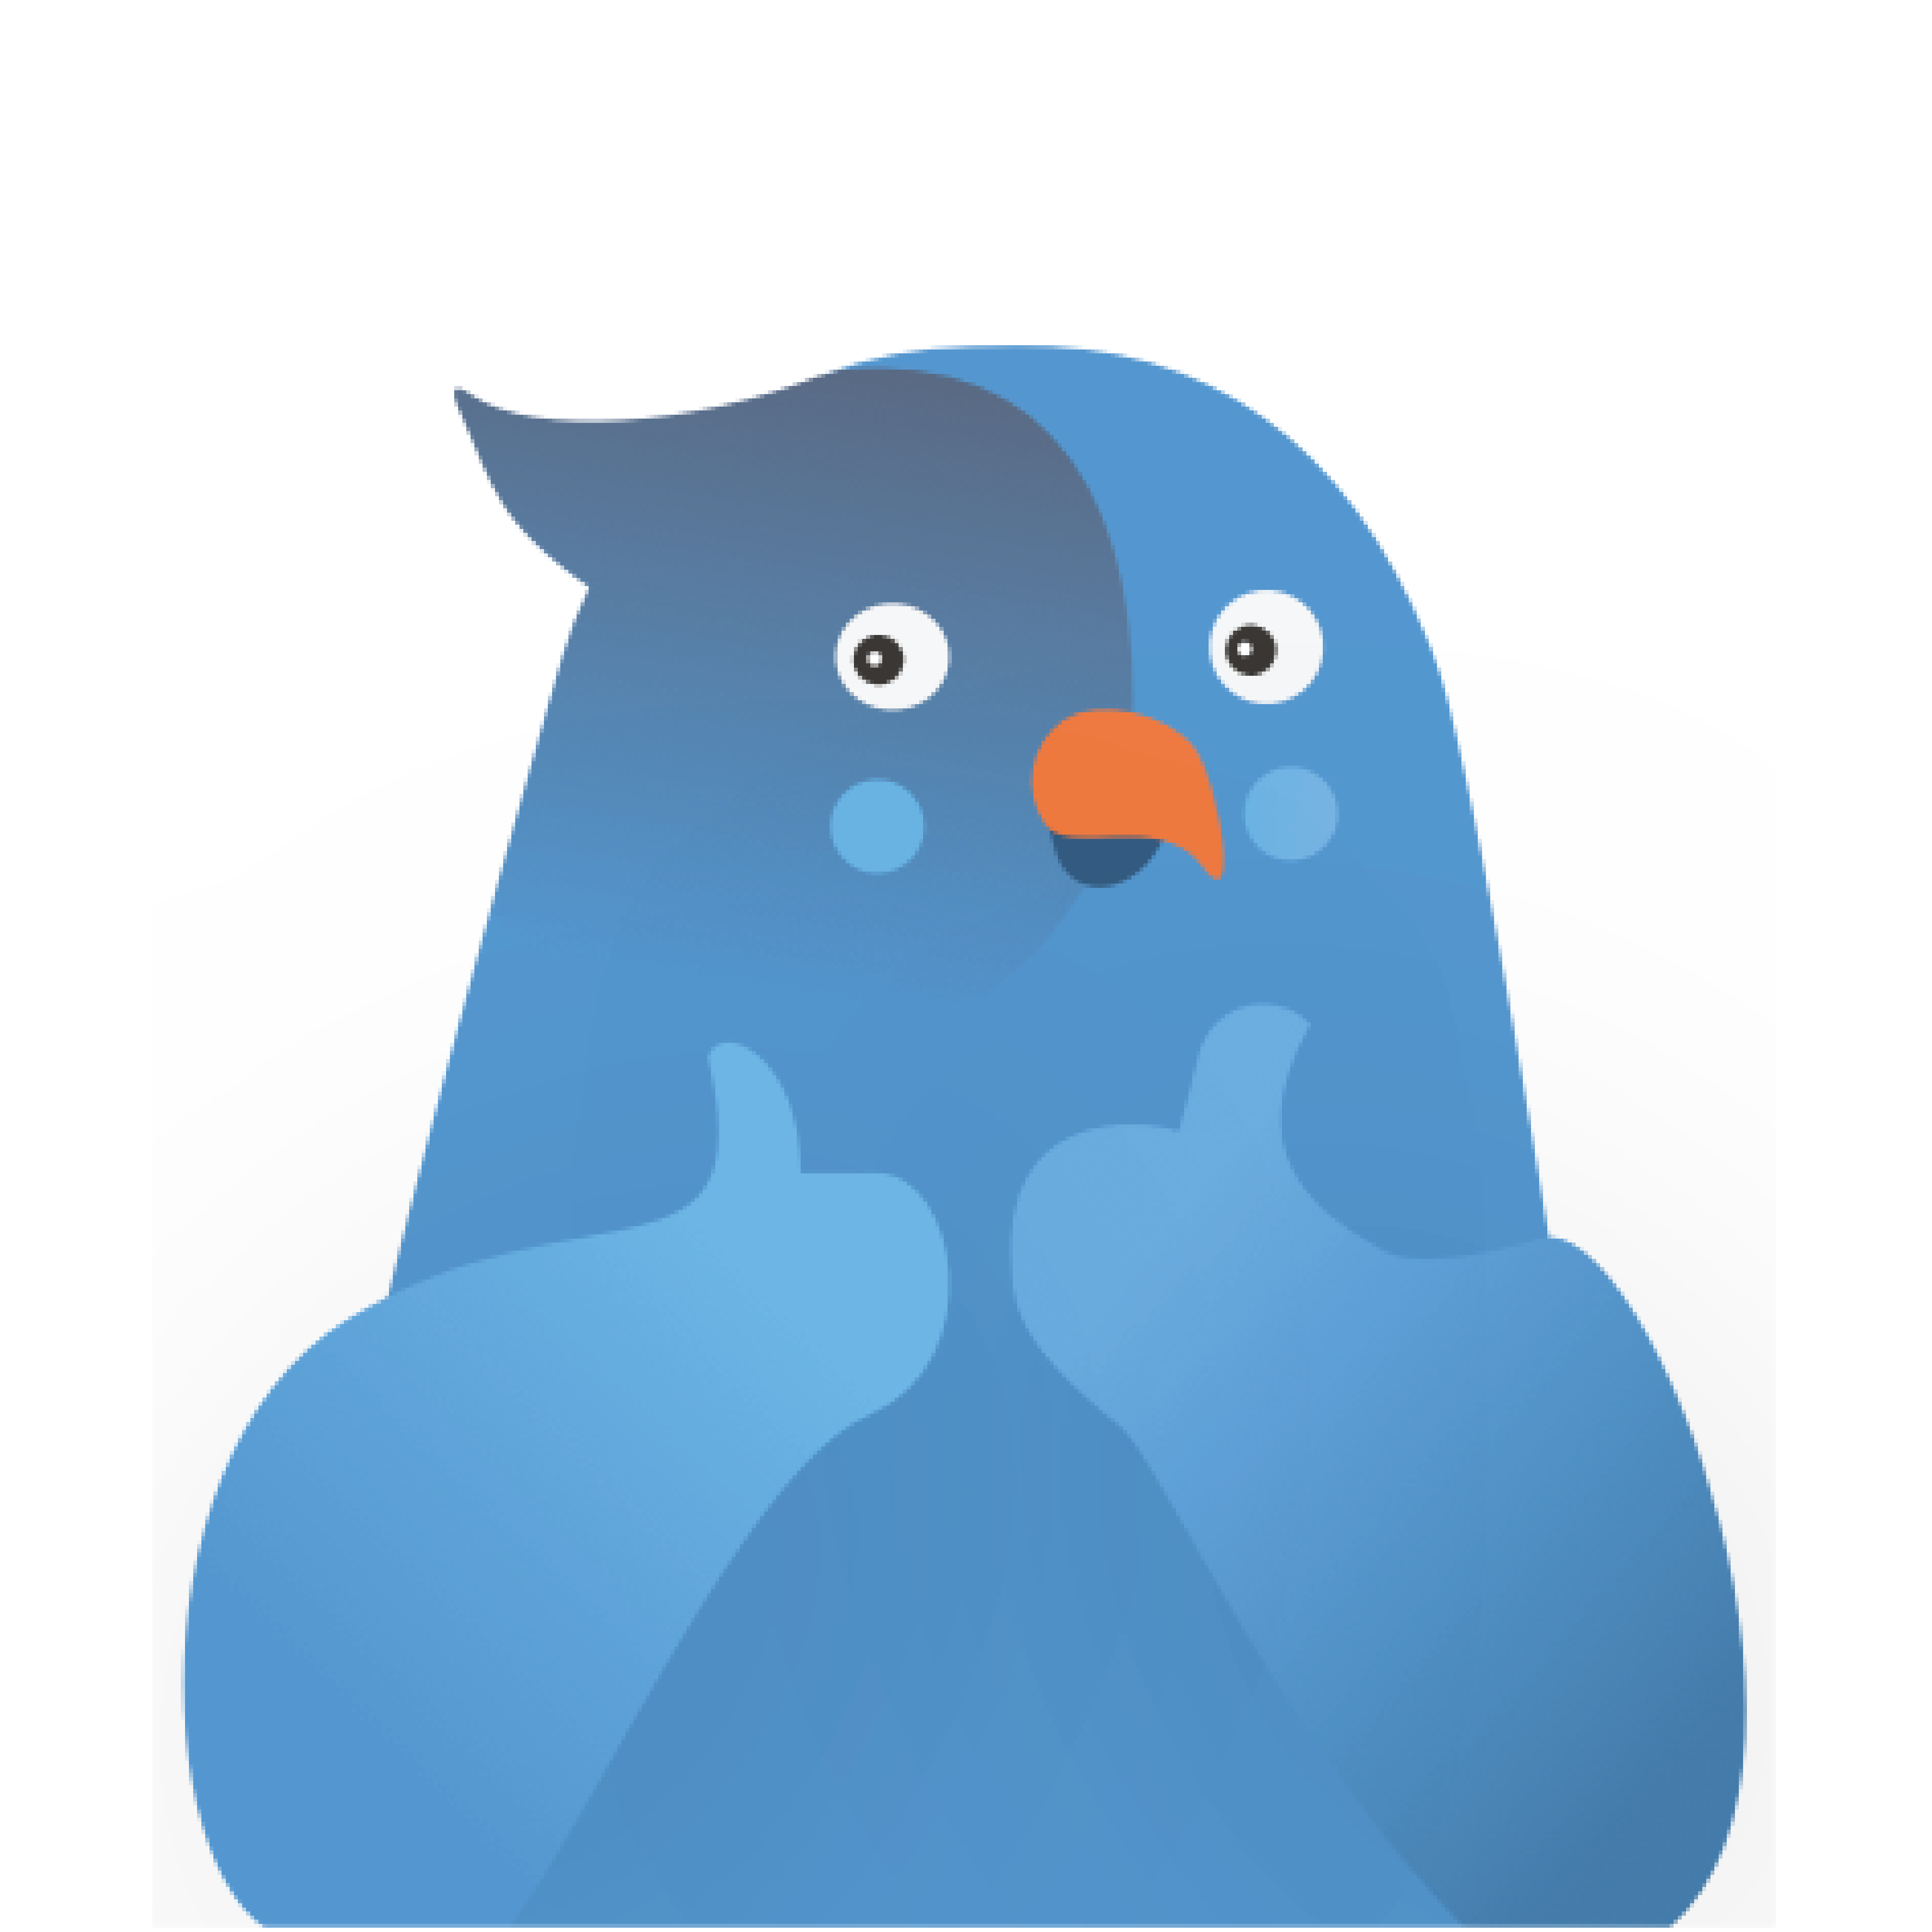 Yubi, the blue parrot mascot, with thumbs up on a teal background